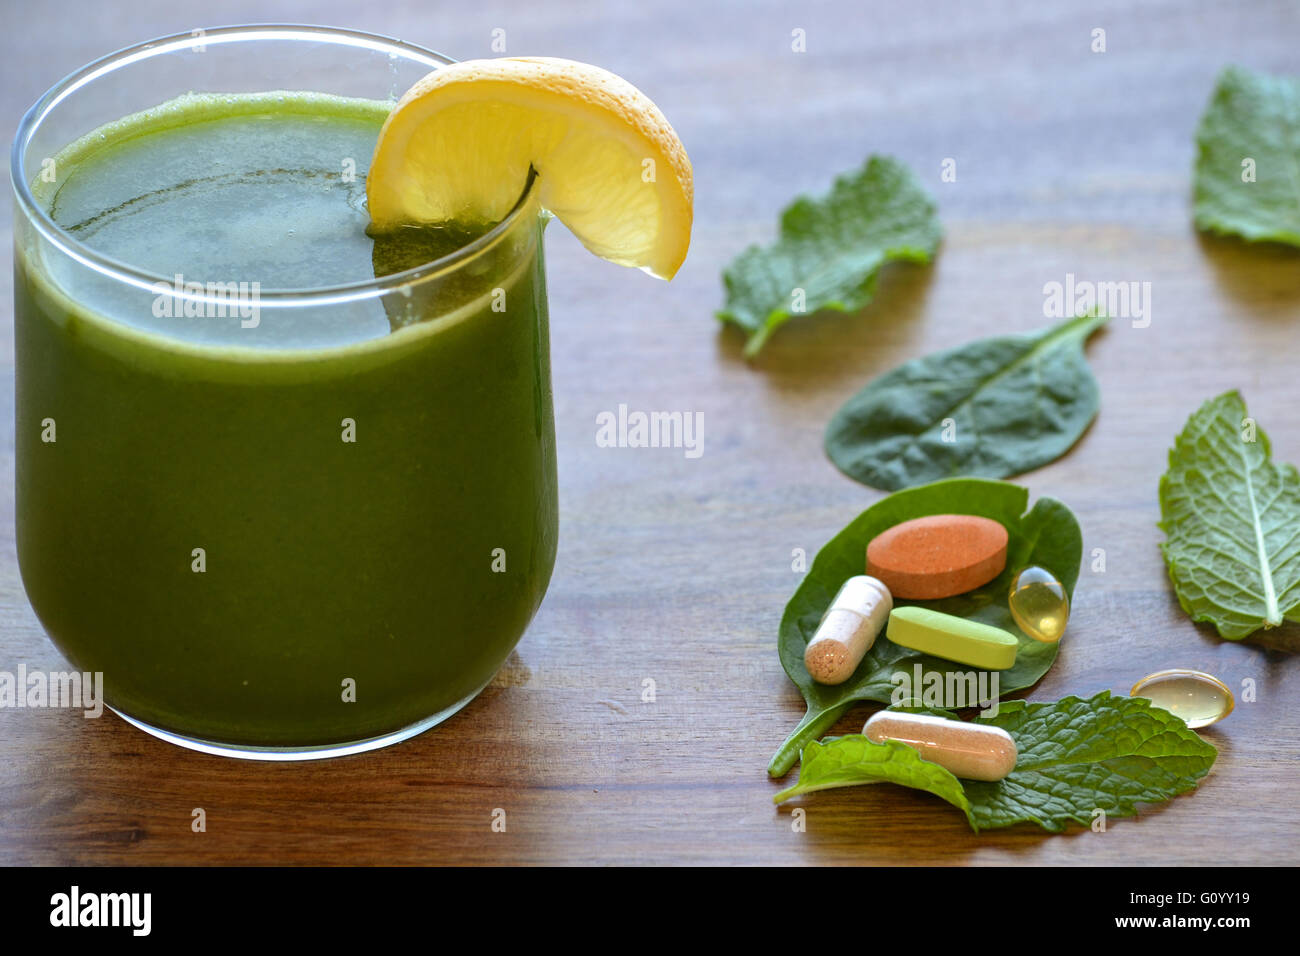 Green detox smoothie and dietary supplements on wooden table - Stock Image